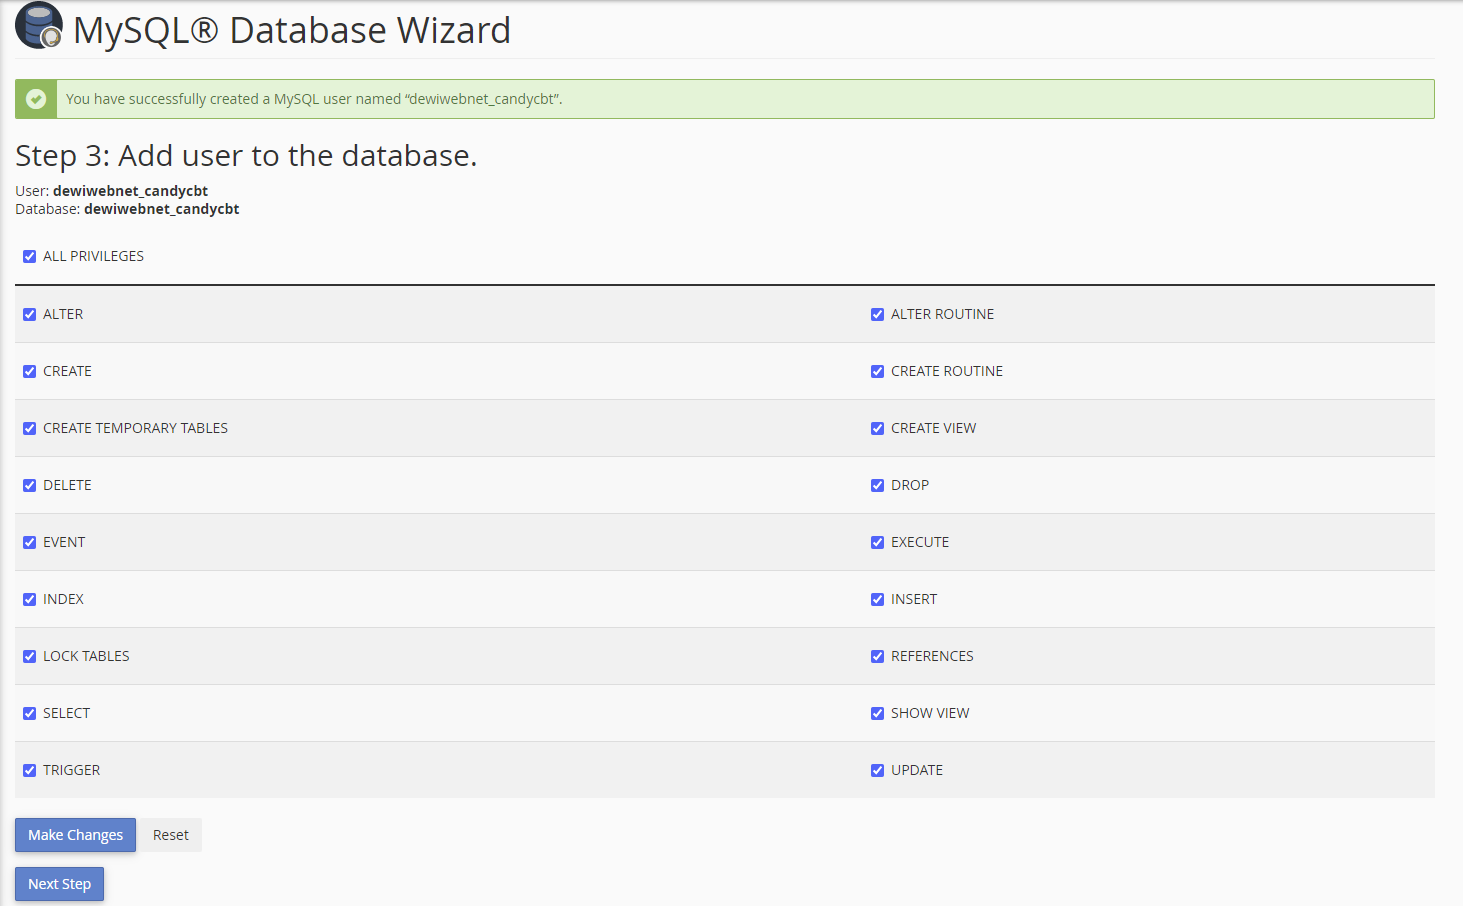 tick all privileges to database for user